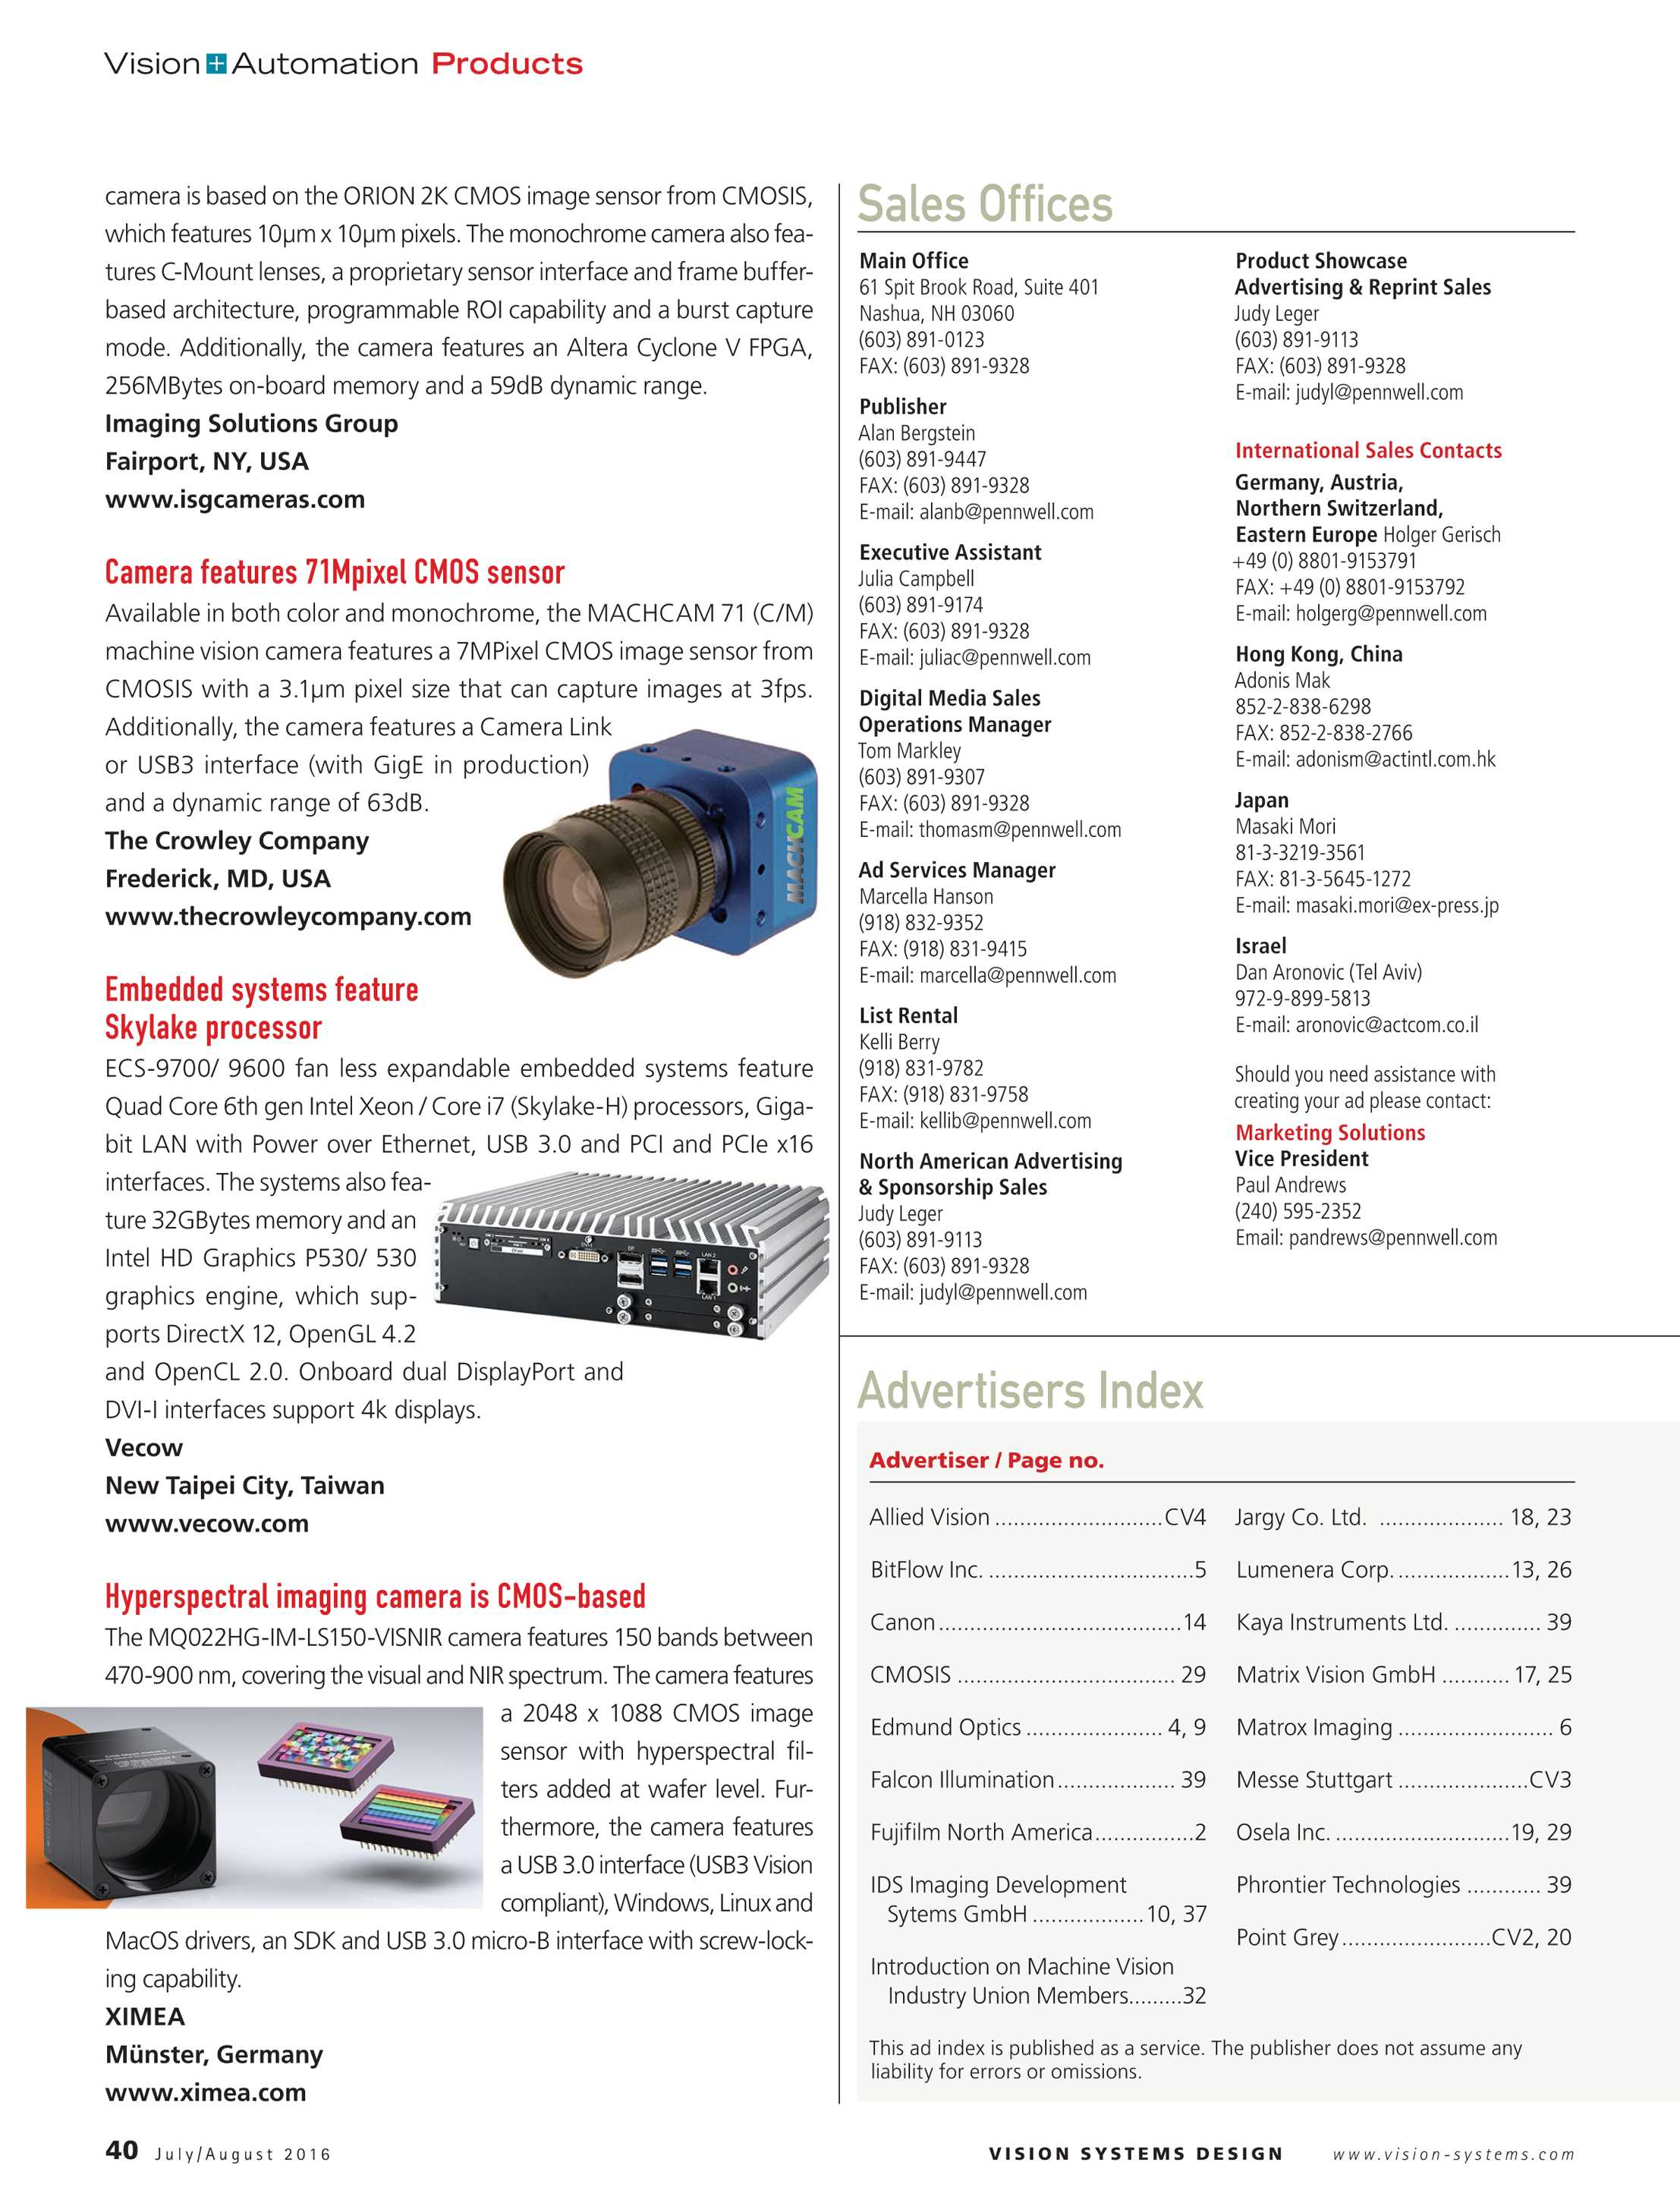 Vision Systems - July/August 2016 - page 40